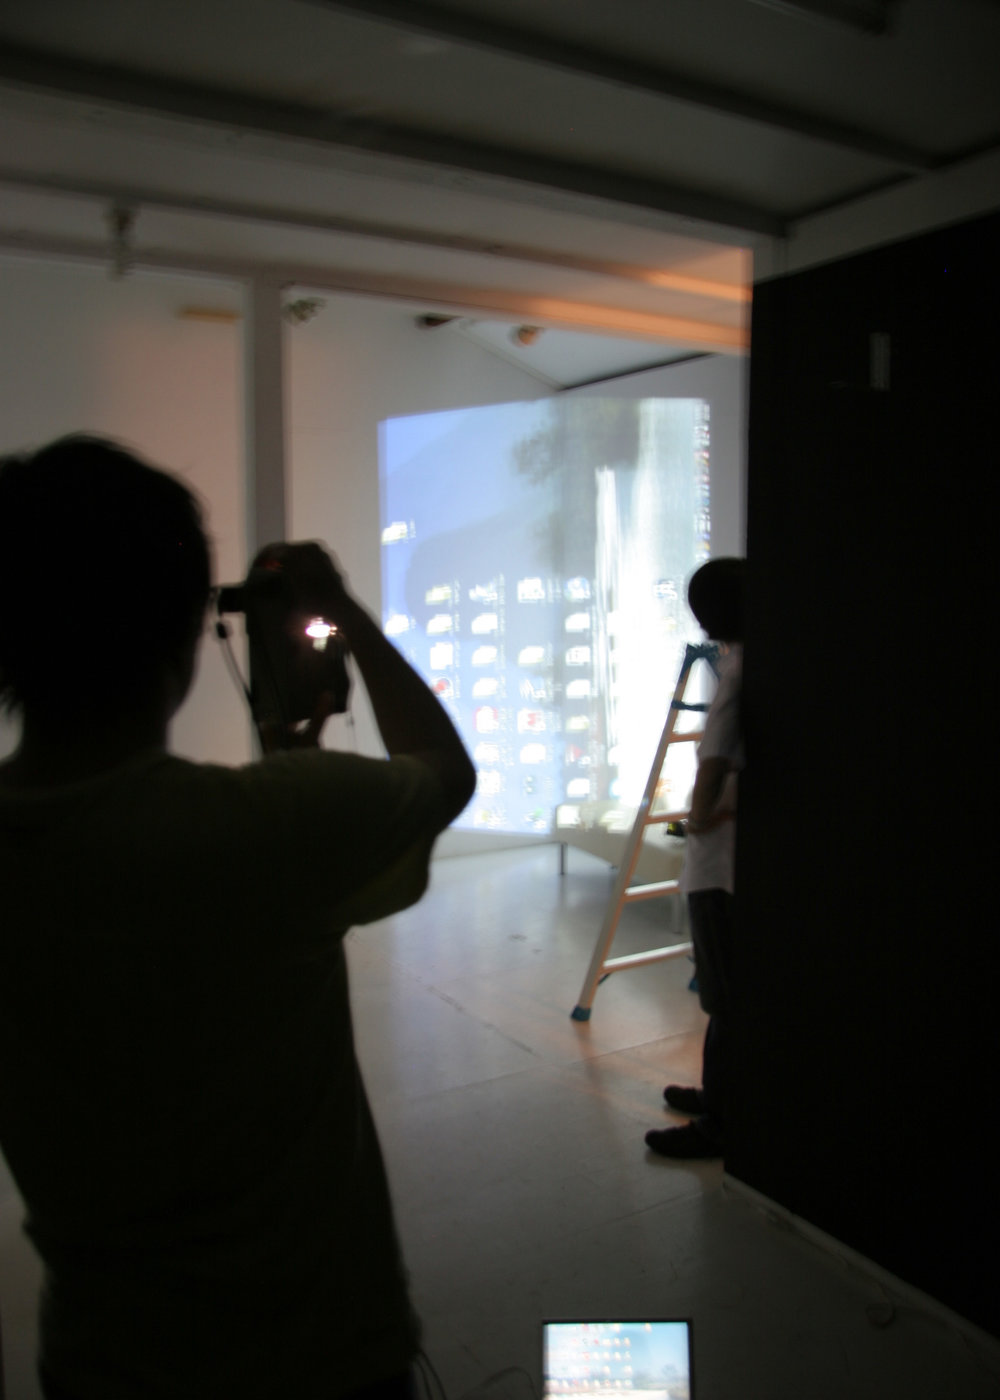 Fig.18 - 'Intangible Spaces': setting up the projections